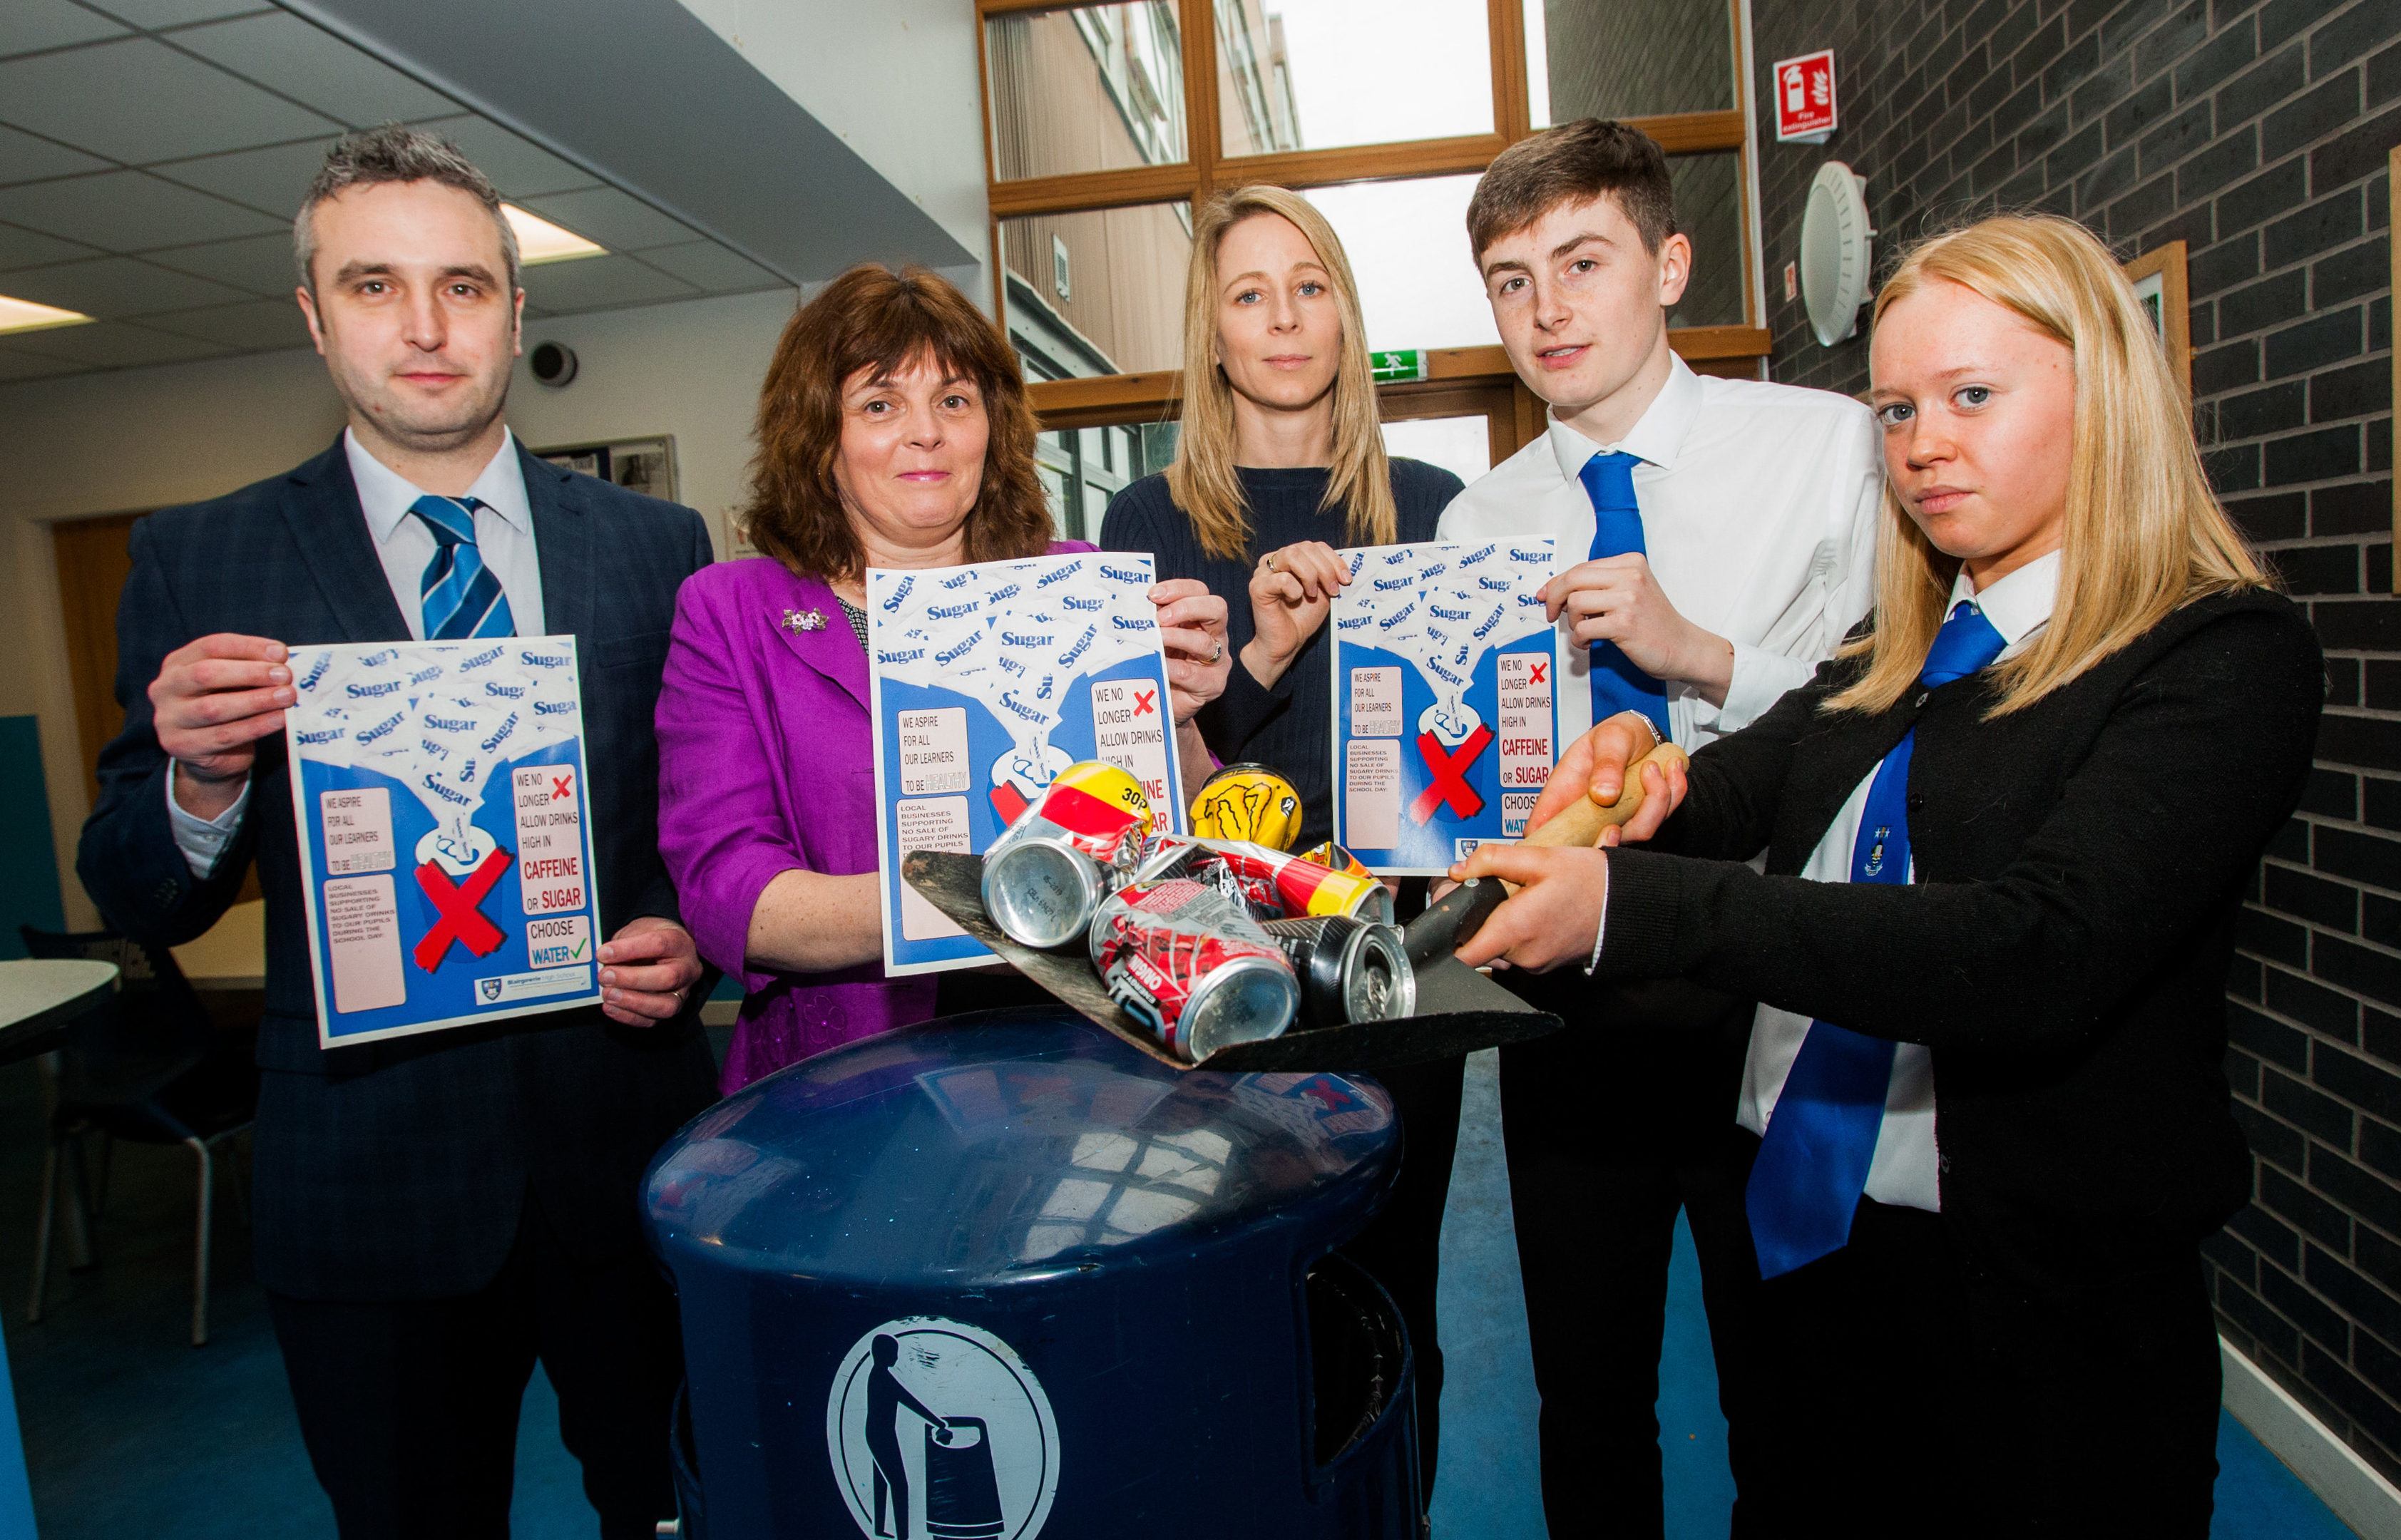 Left to right is Deputy Head Teacher Andy Dingwall and Head Teacher Bev Leslie, Laura Jane Grant (Principal Teacher of Science), Rhys Fraser (6th year) and Emily Downham (6th year).